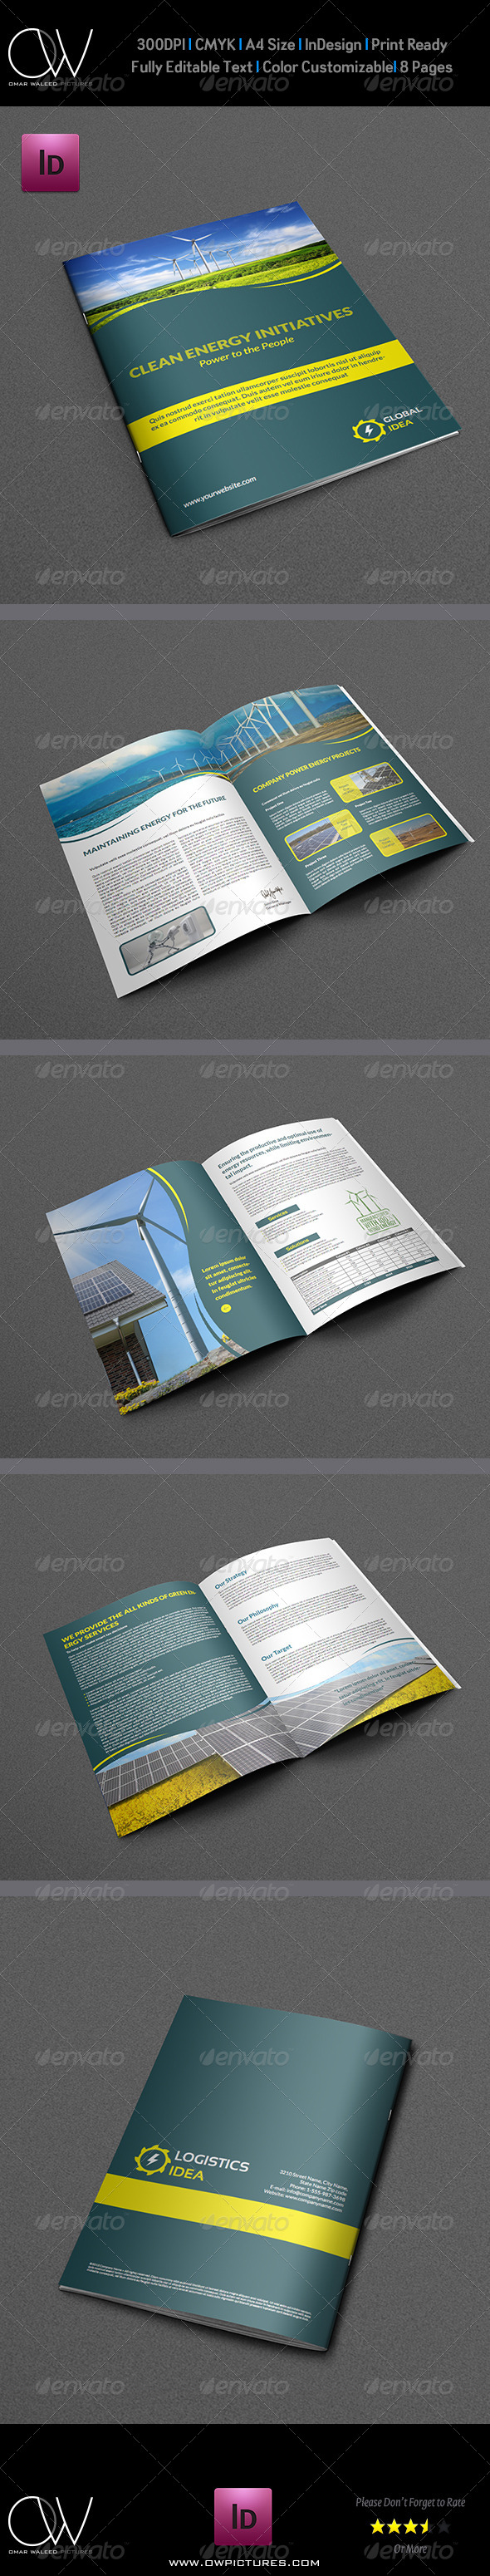 Power Energy Services Brochure Template - 8 Pages - Brochures Print Templates